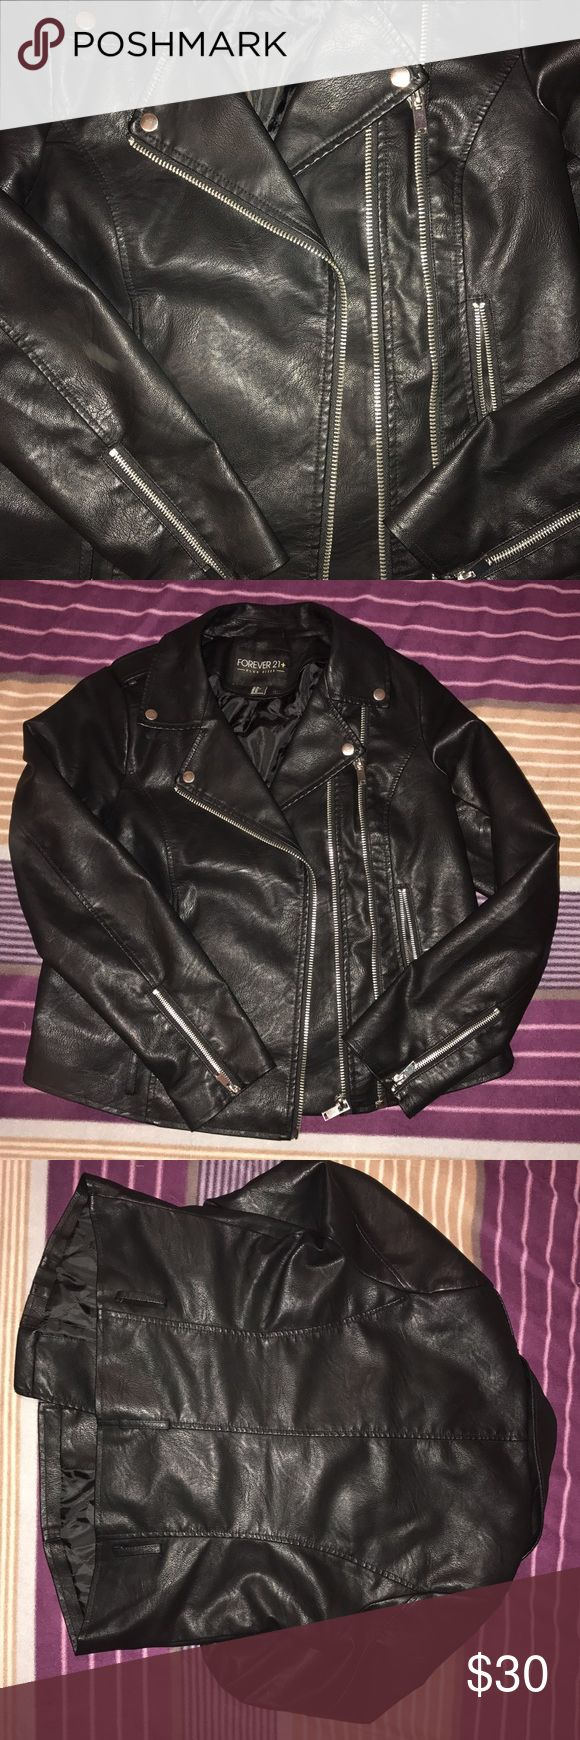 Forever 21+ Motorcycle Jacket Pleather black jacket. Plus size, Forever 21. Excellent condition, worn once. Note that it's missing the belt that goes around the waist. ASOS Curve Jackets & Coats